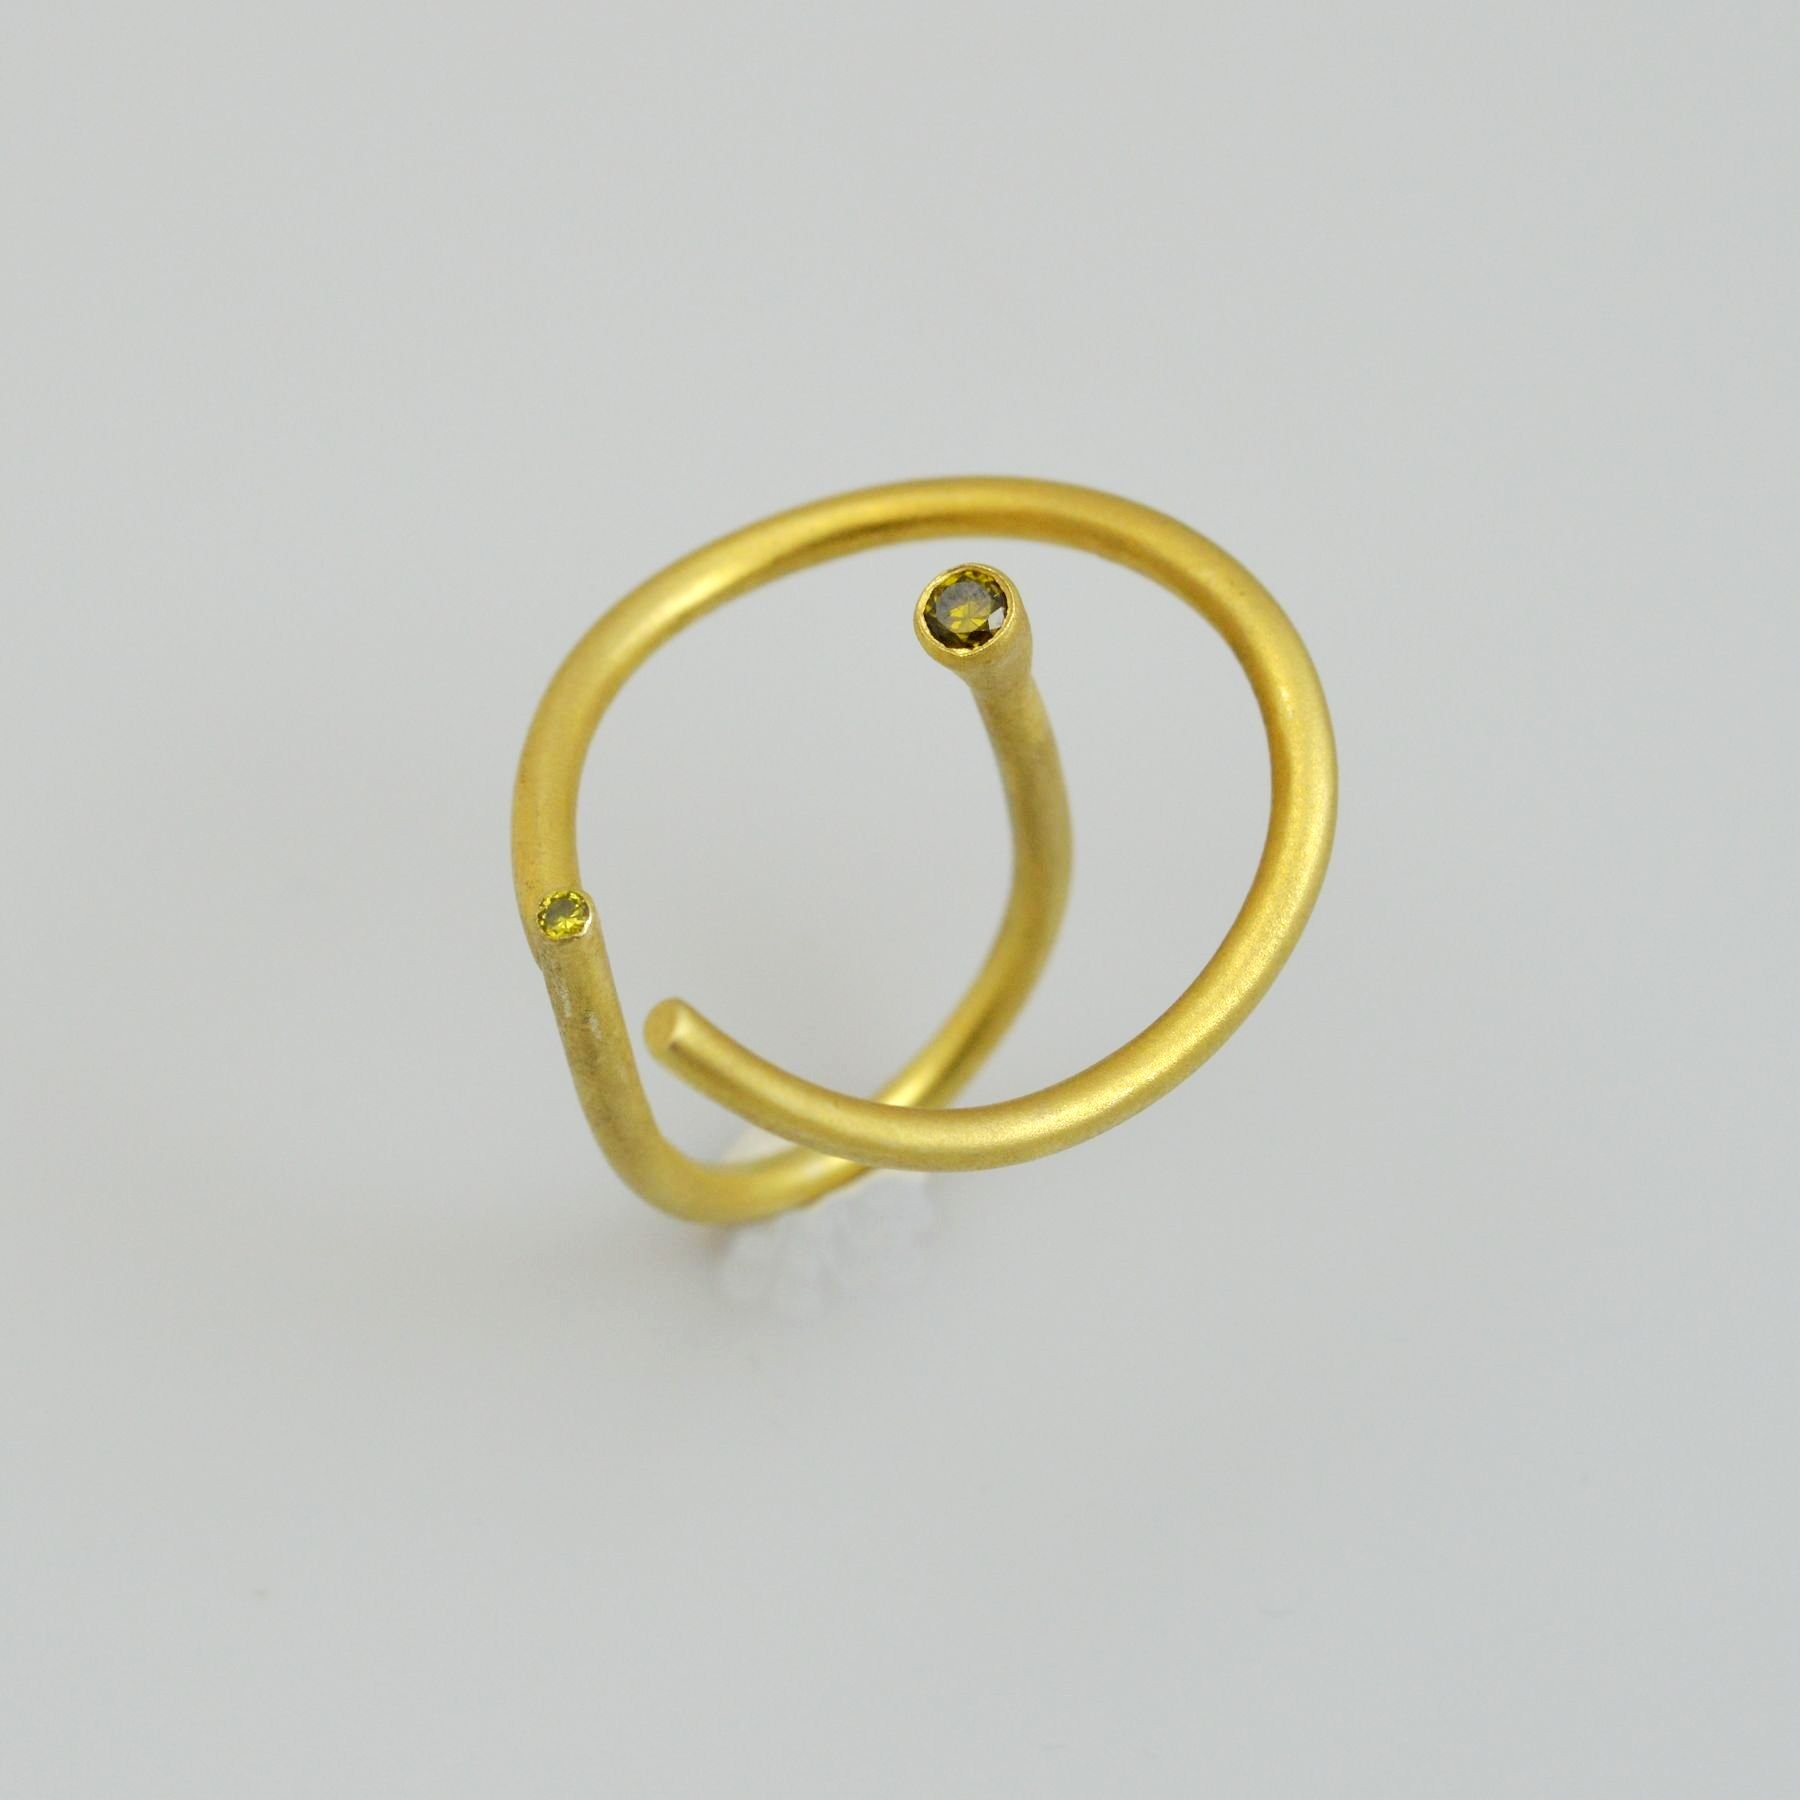 Silver ring 925 gold plated with synthetic stones